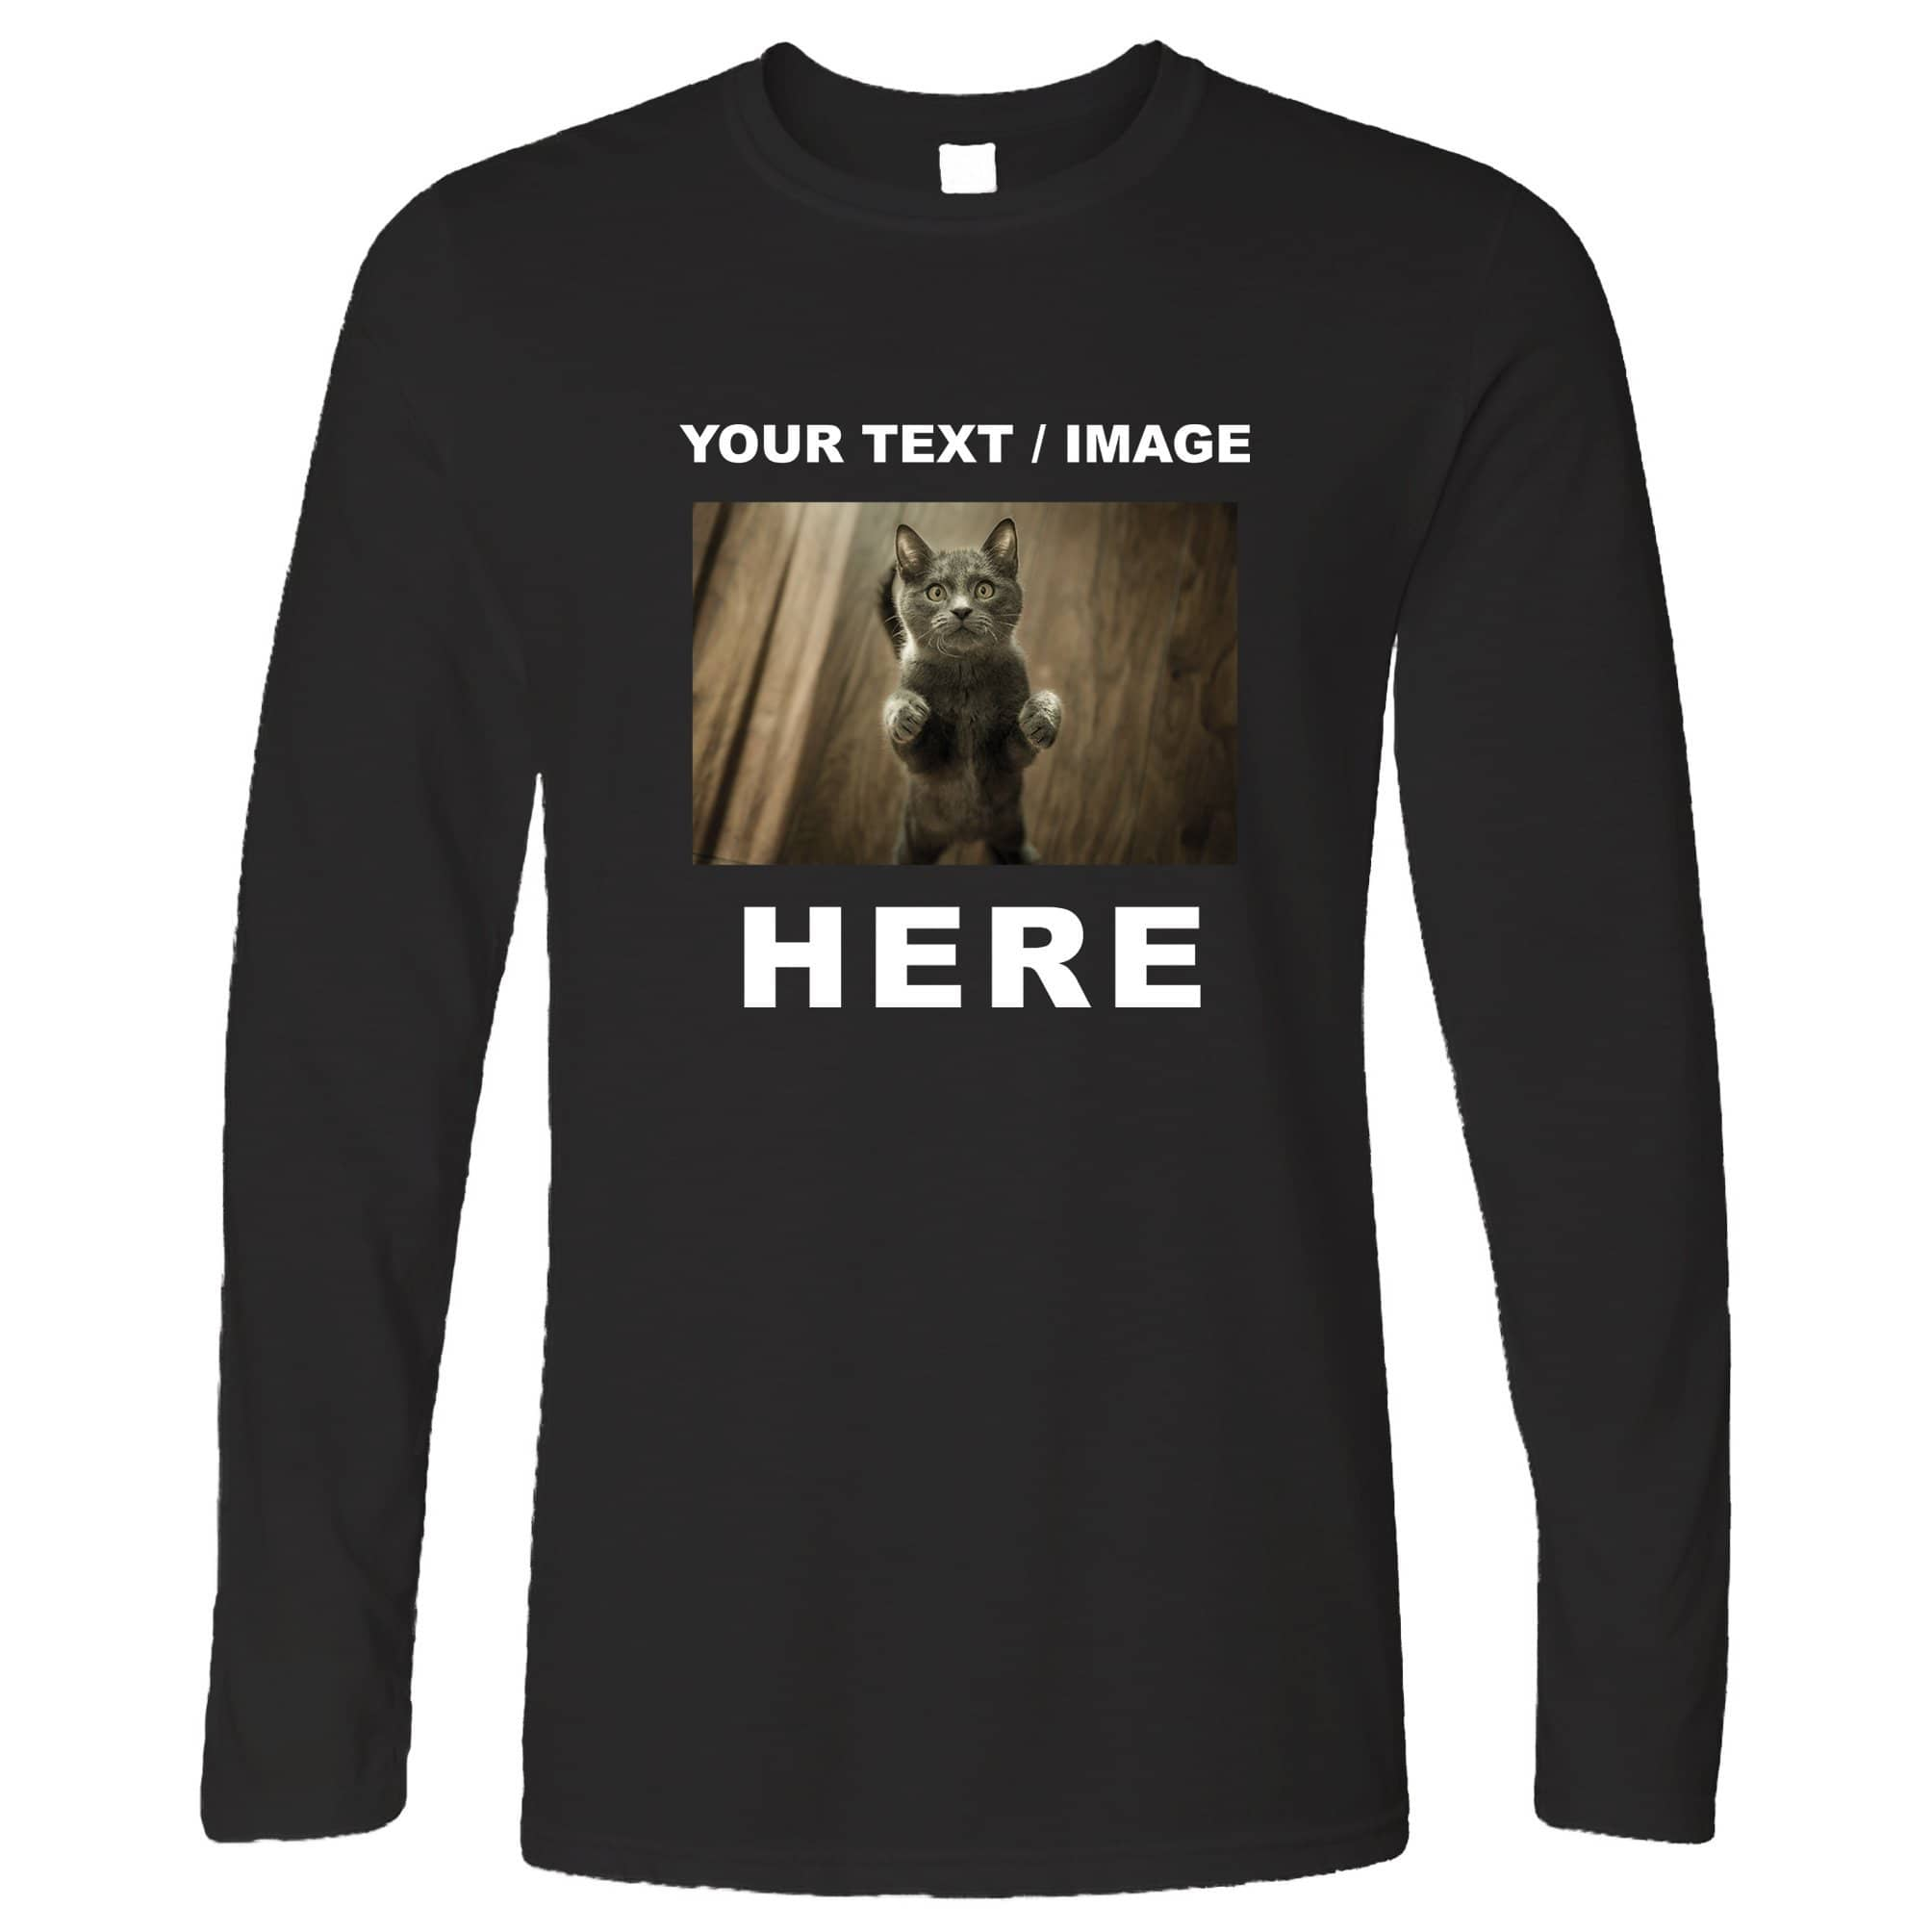 Custom Printed Long Sleeve with Your Text or Image